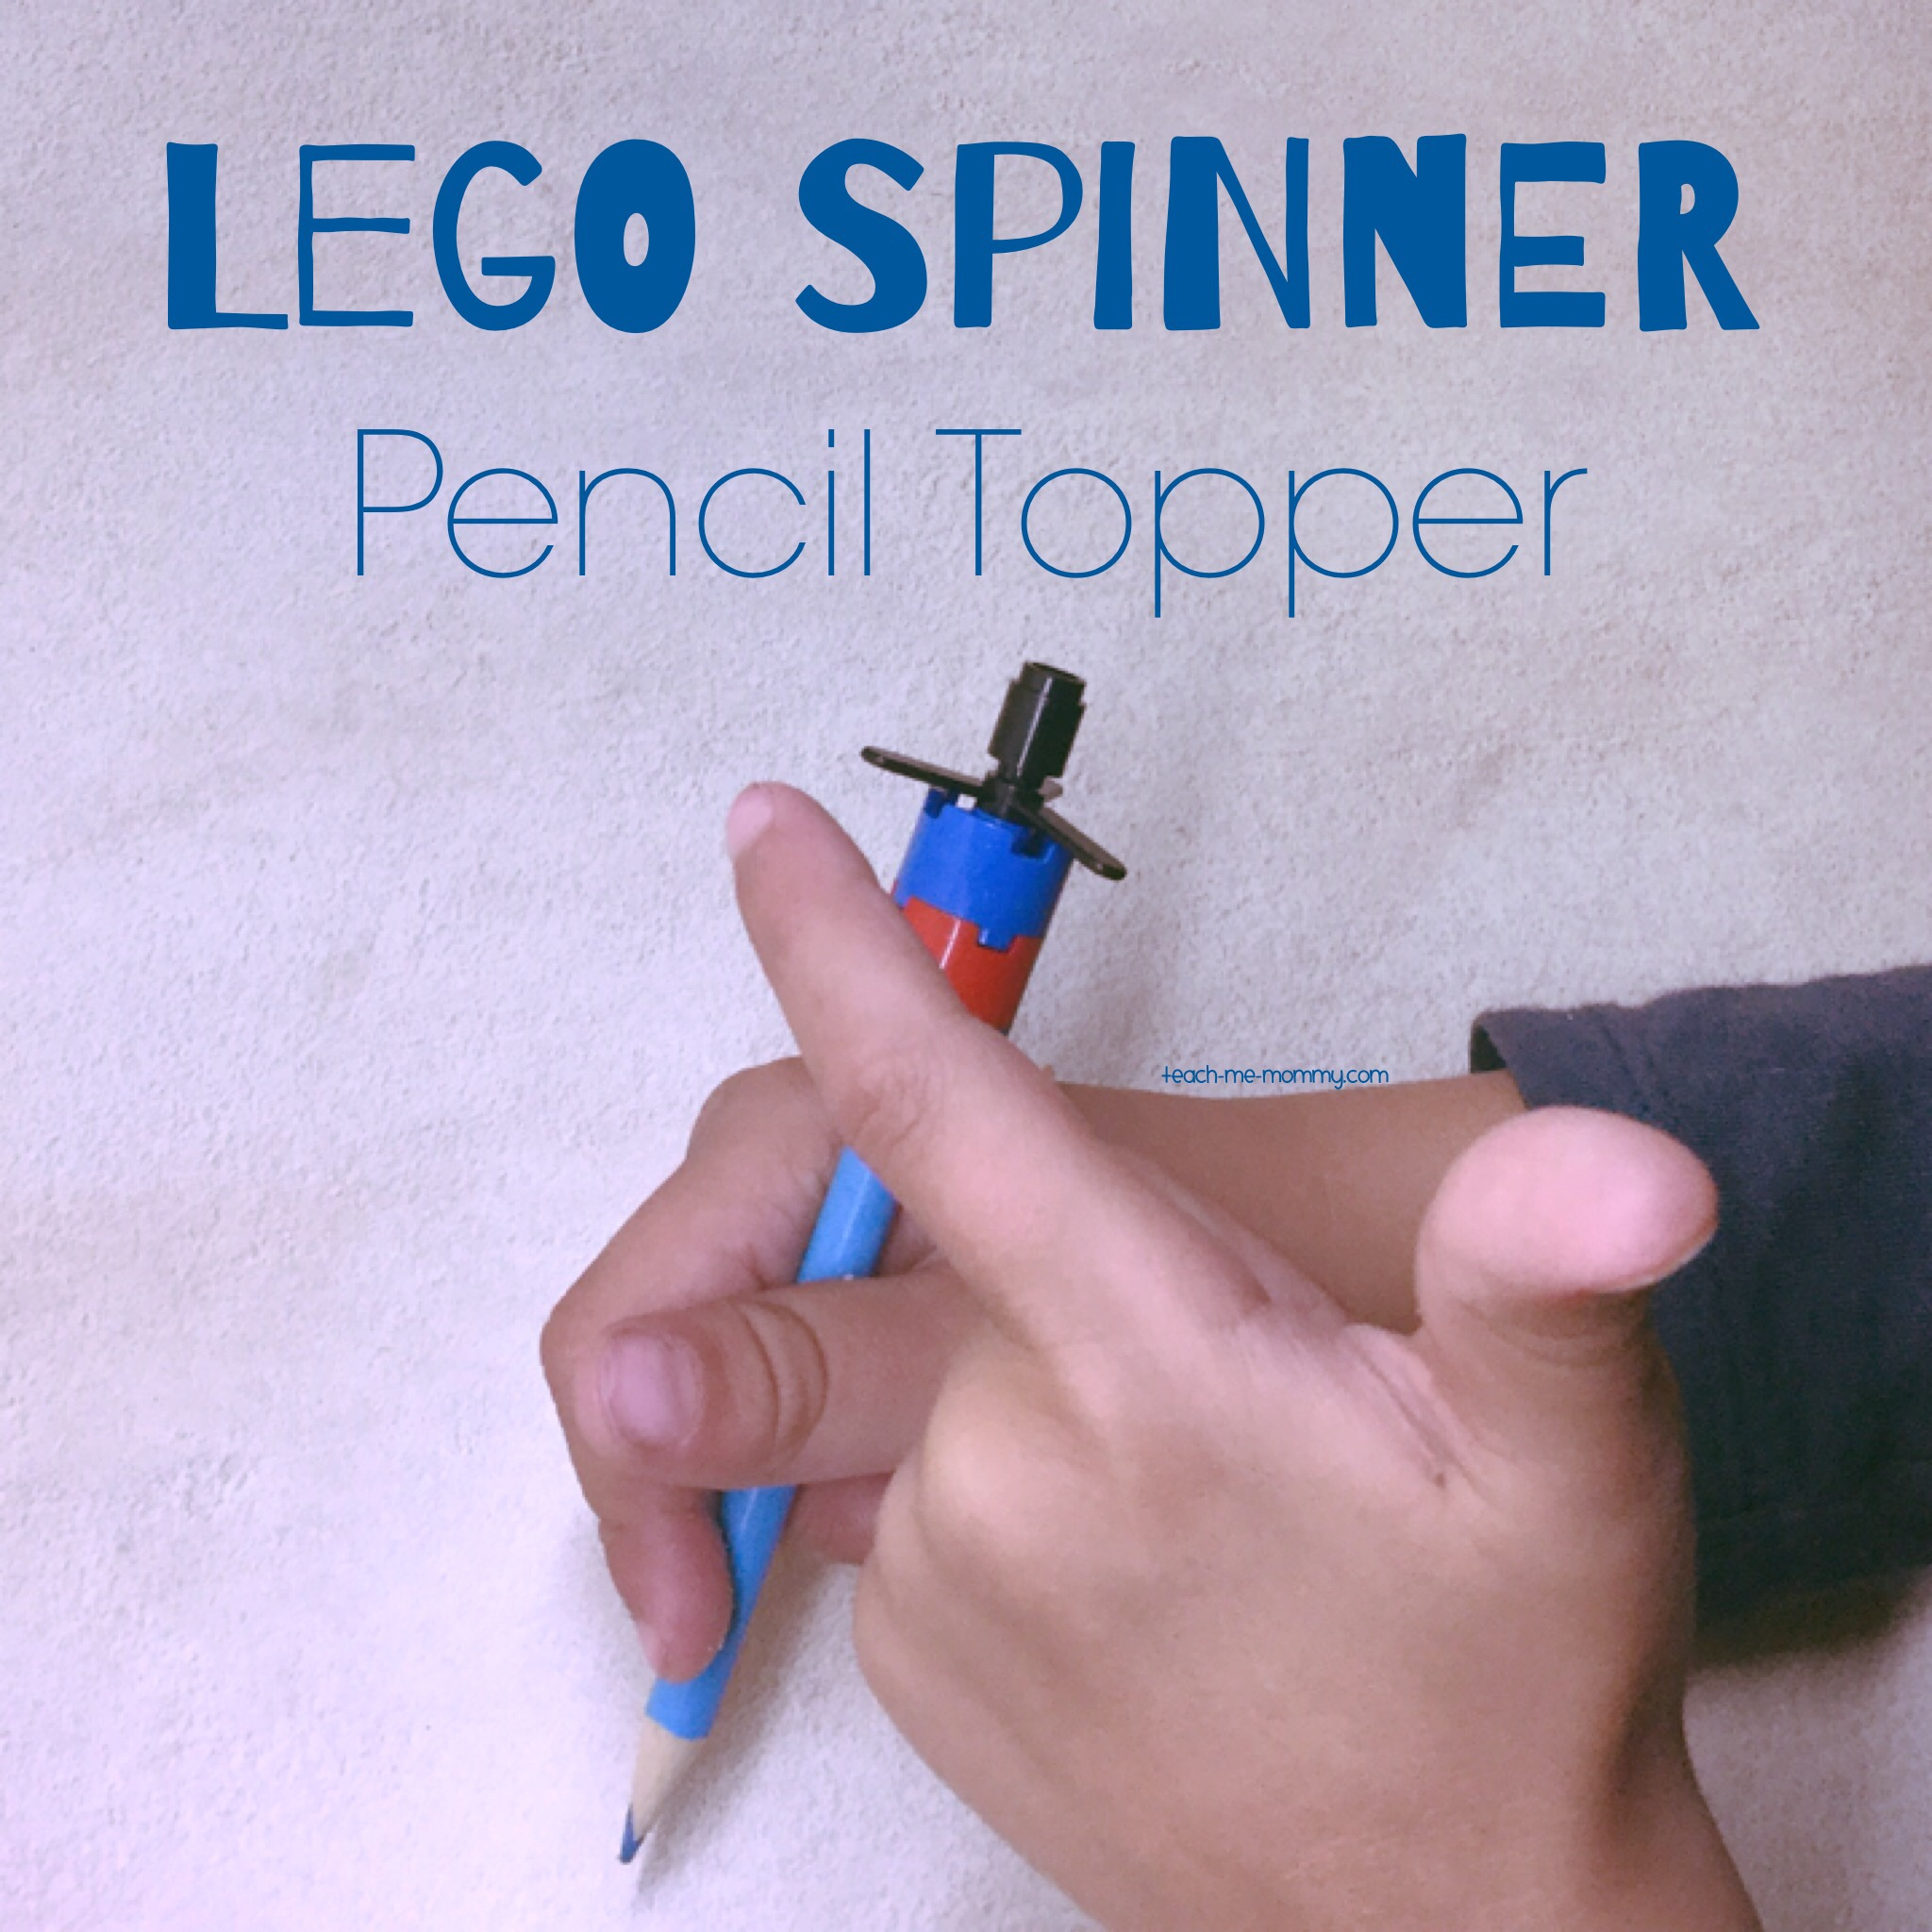 Spinner pencil topper